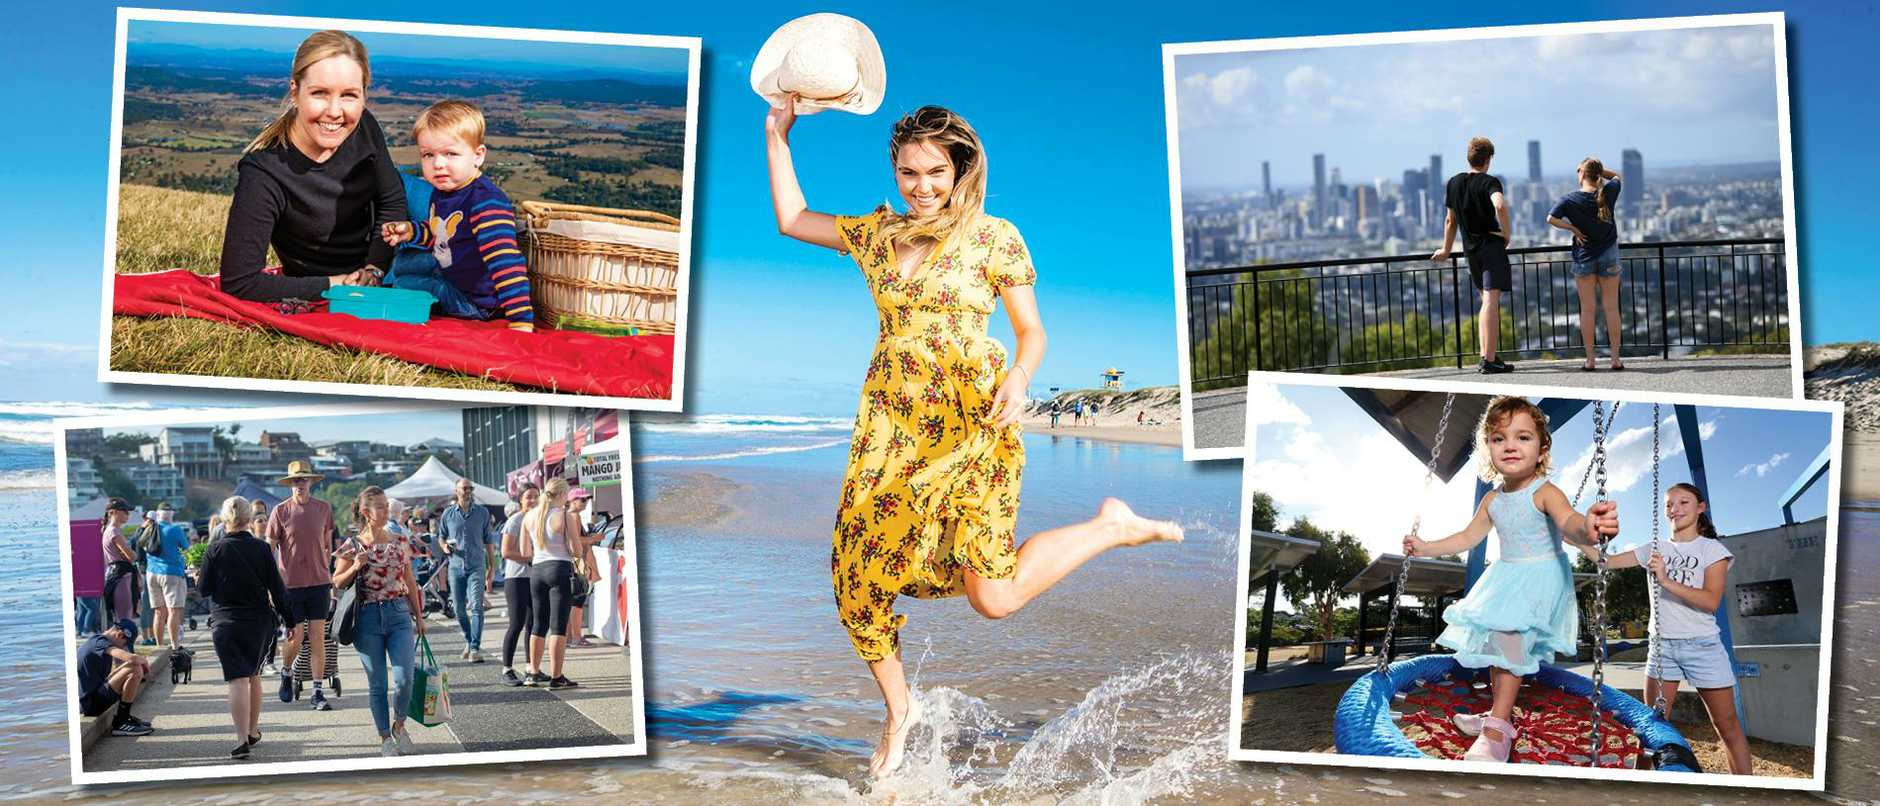 Queenslanders will emerge from isolation today, with restaurants and beauty salons flush with bookings and bumper traffic expected as people take day trips.